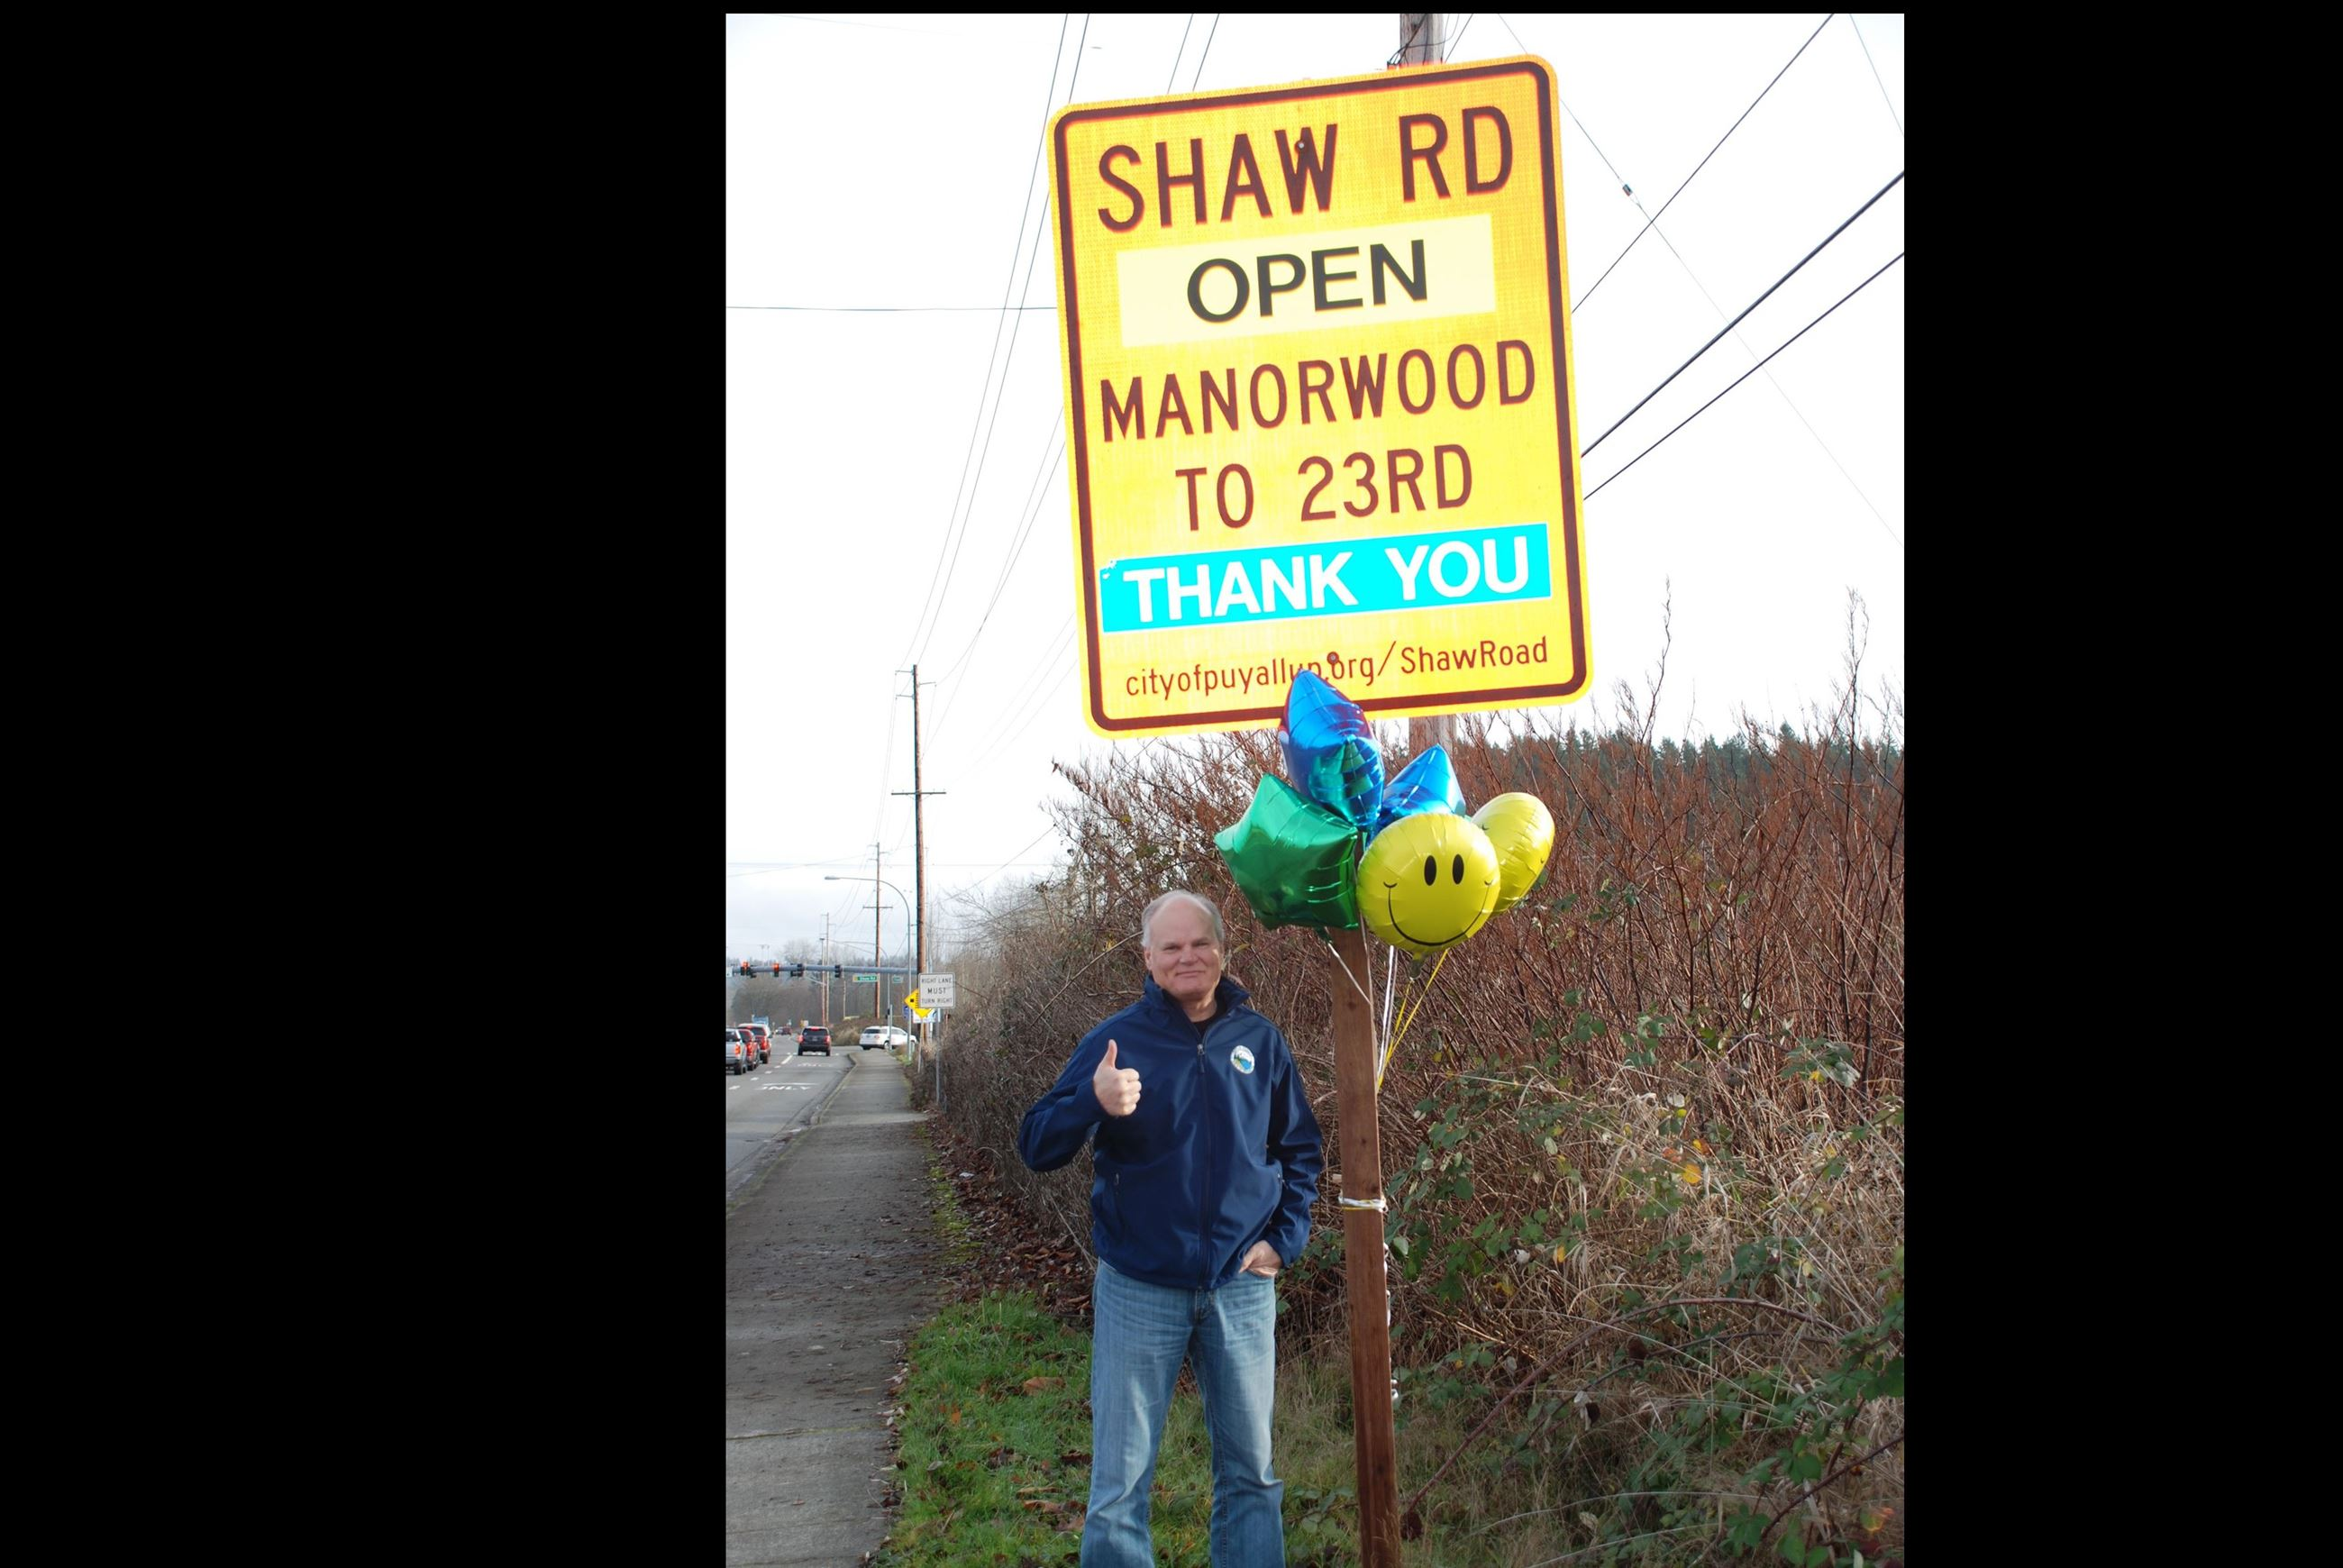 Shaw Road open mayor with sign